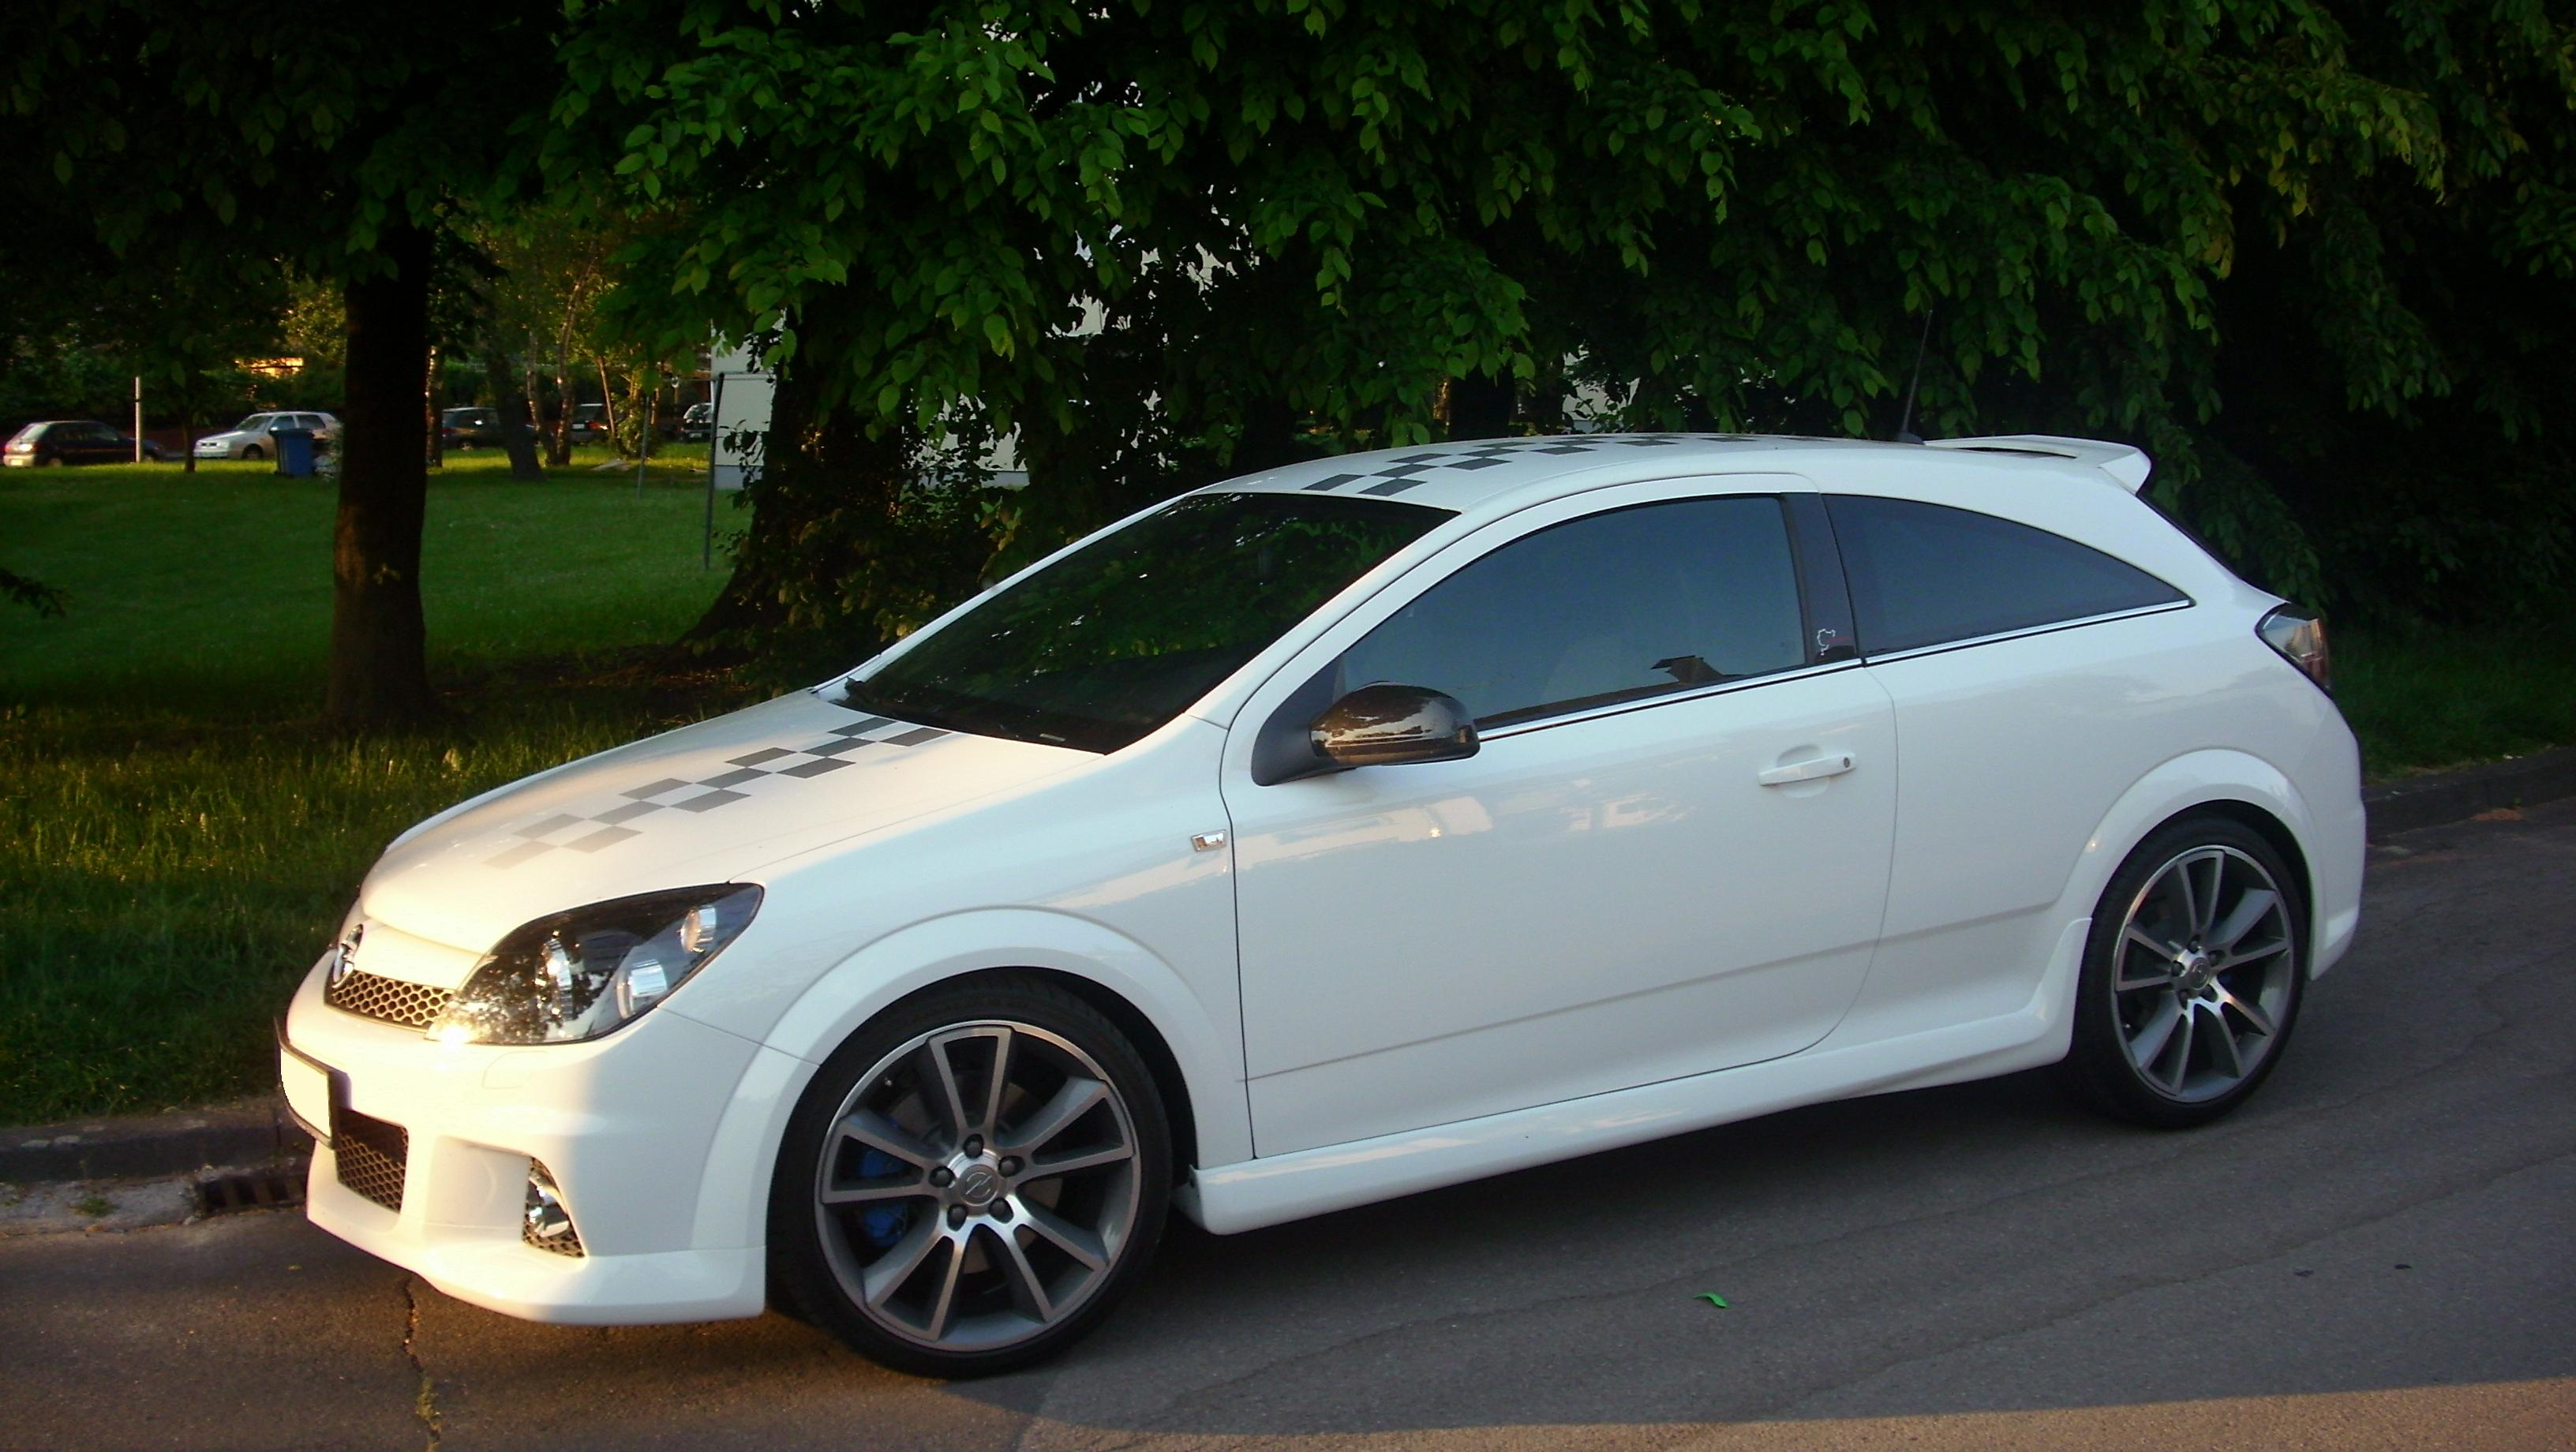 opel astra opc n rburgring edition technical details history photos on better parts ltd. Black Bedroom Furniture Sets. Home Design Ideas